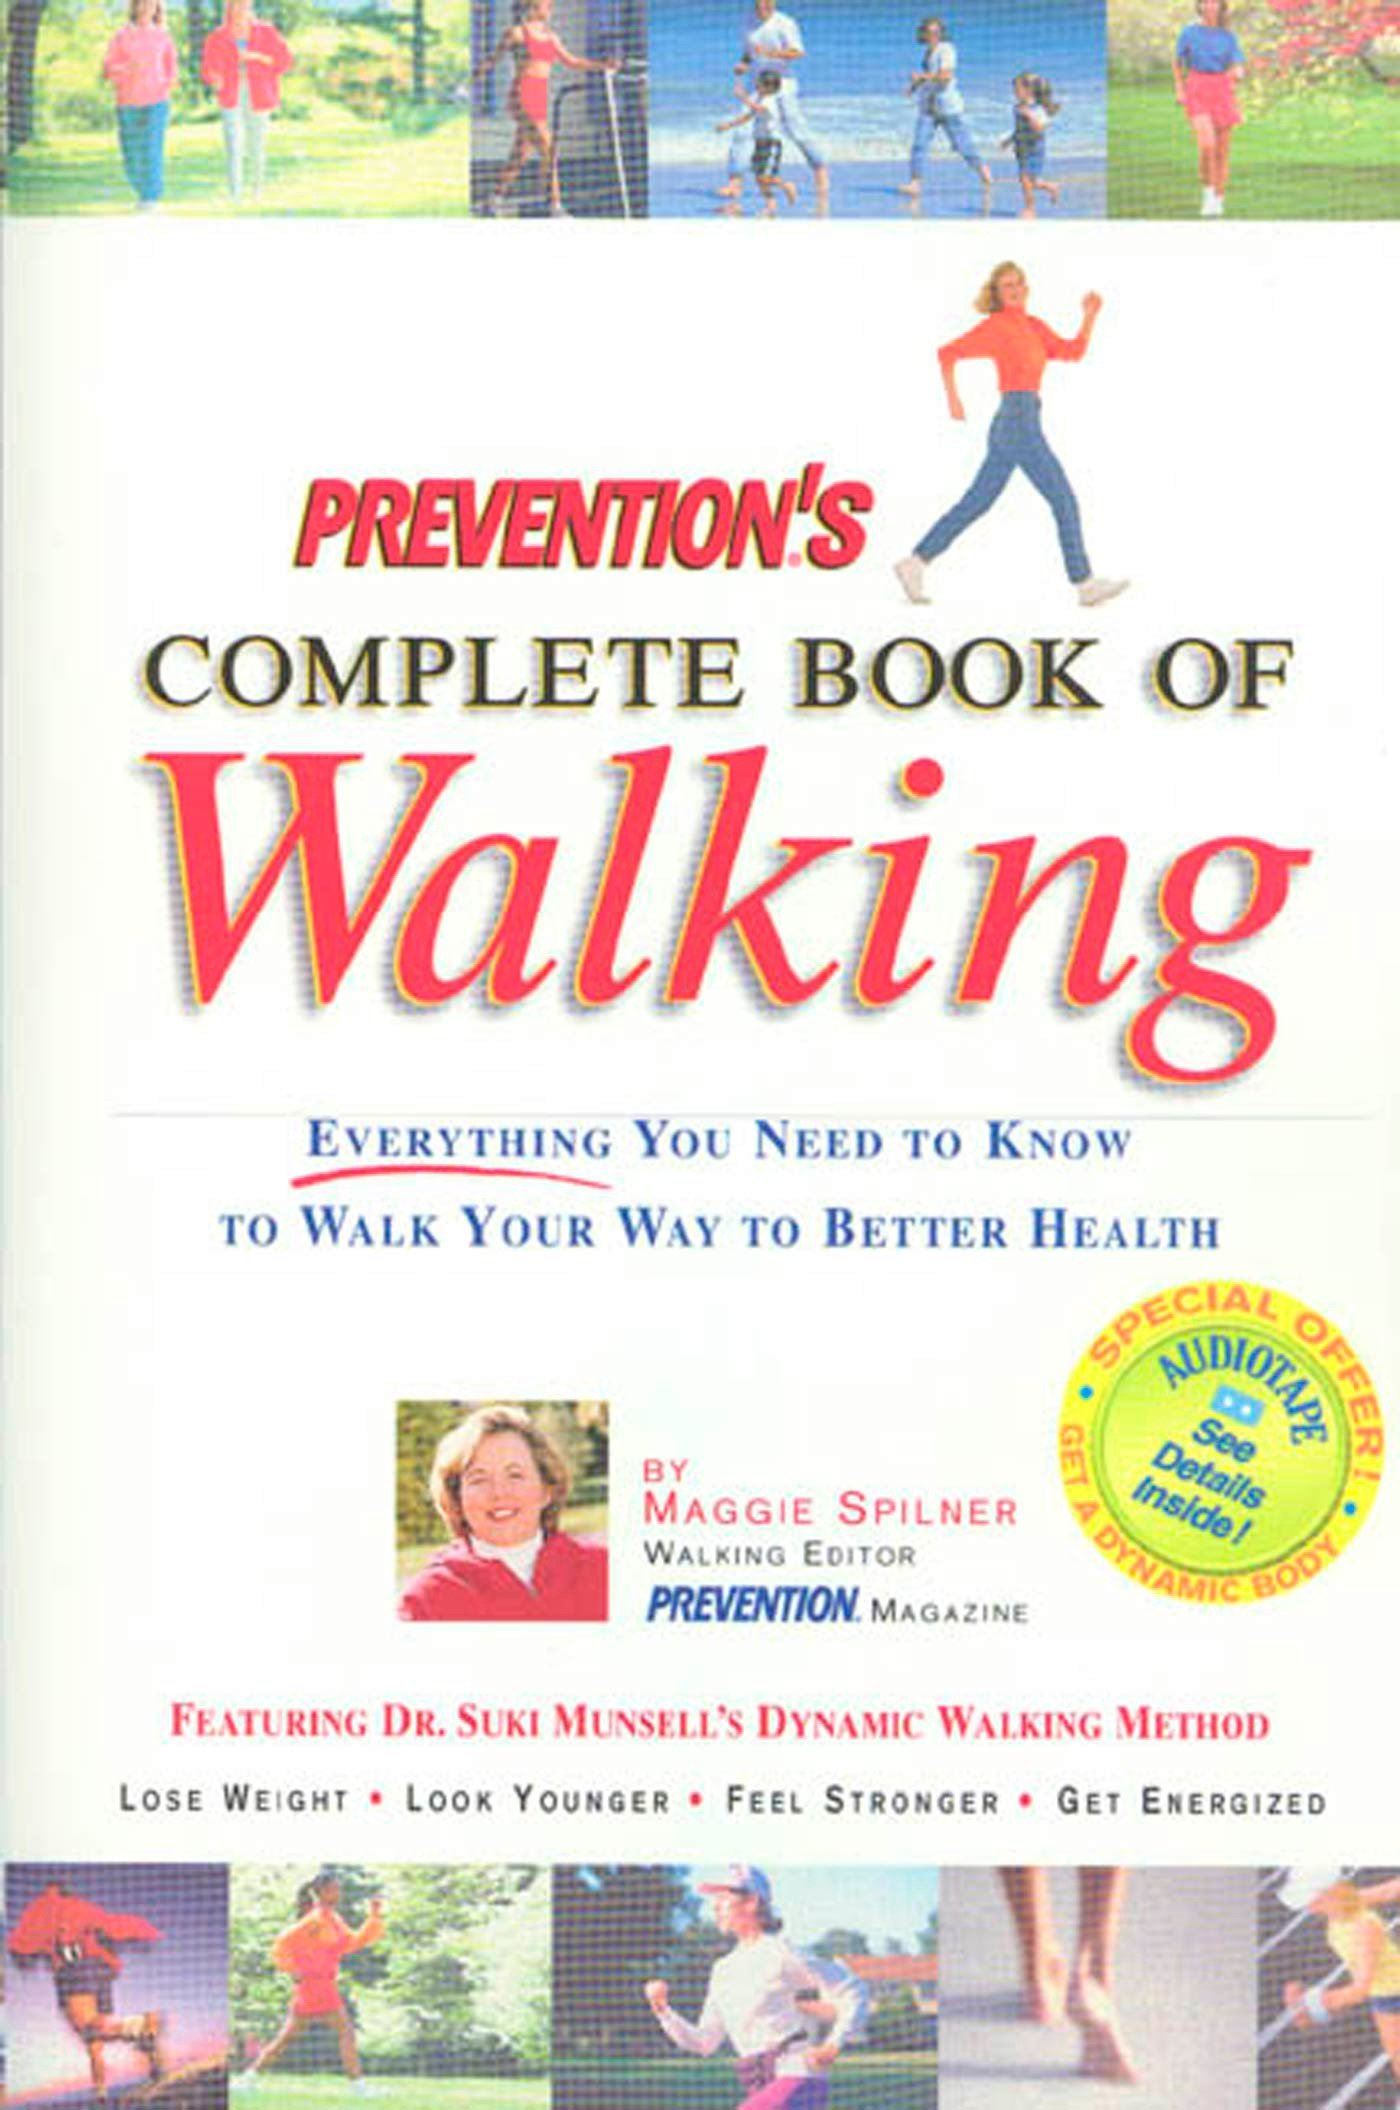 BookofWalking